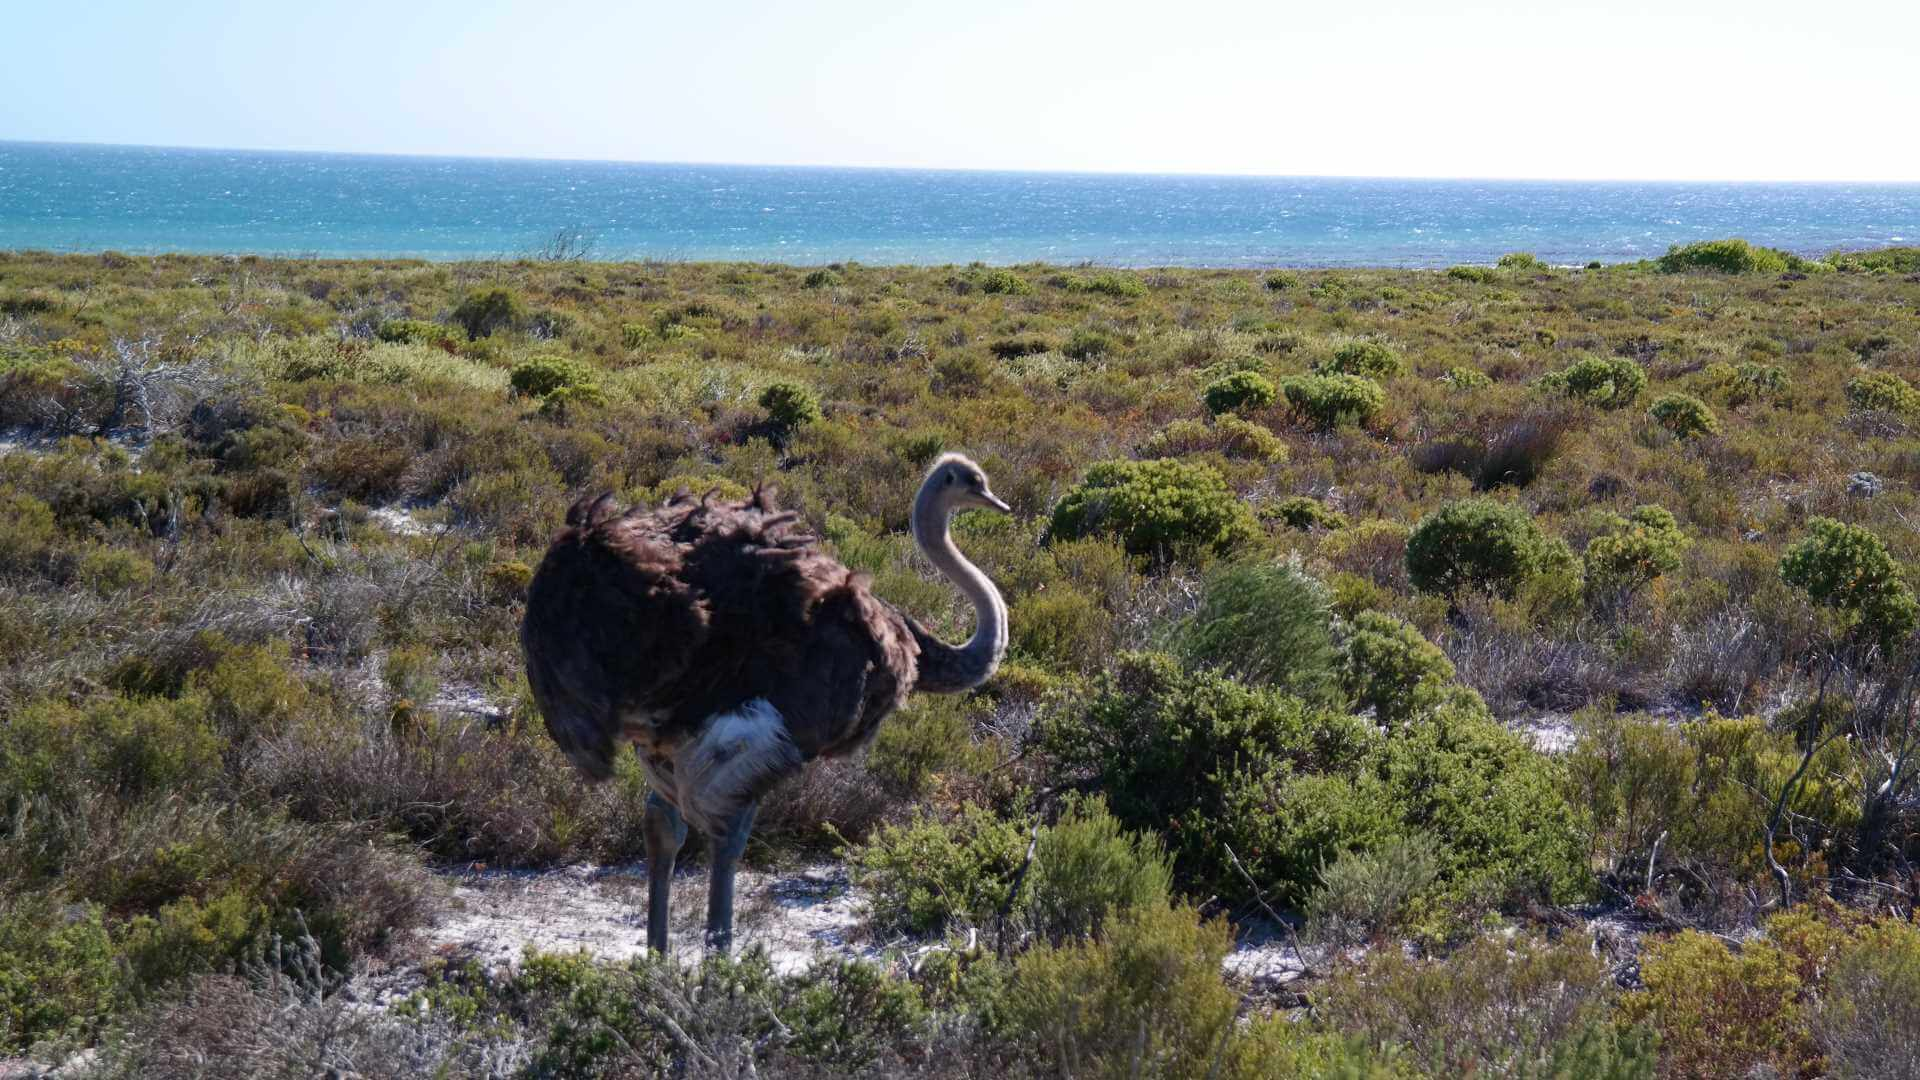 Ostrich near the sea, Cape Peninsula, South Africa